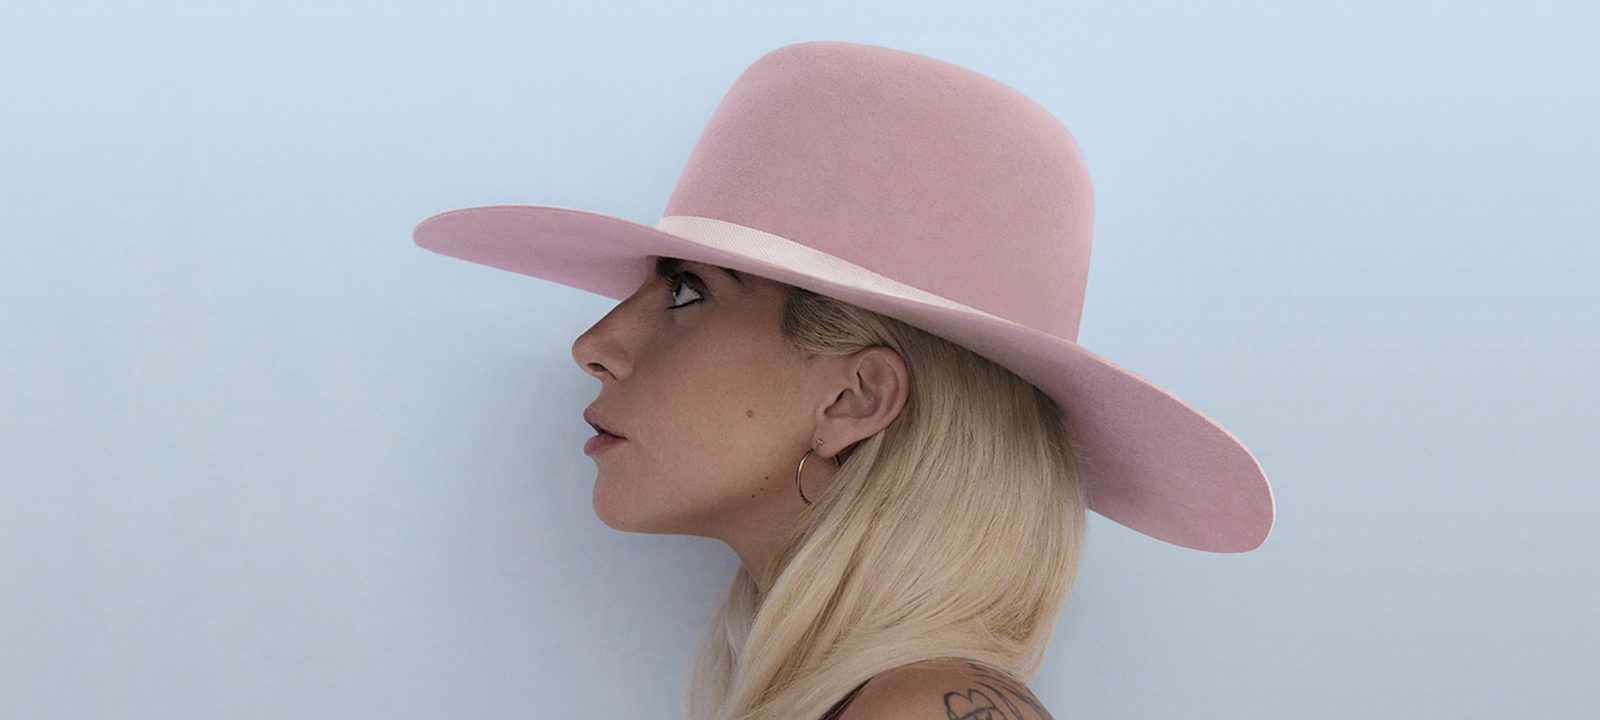 The Joanne Tour